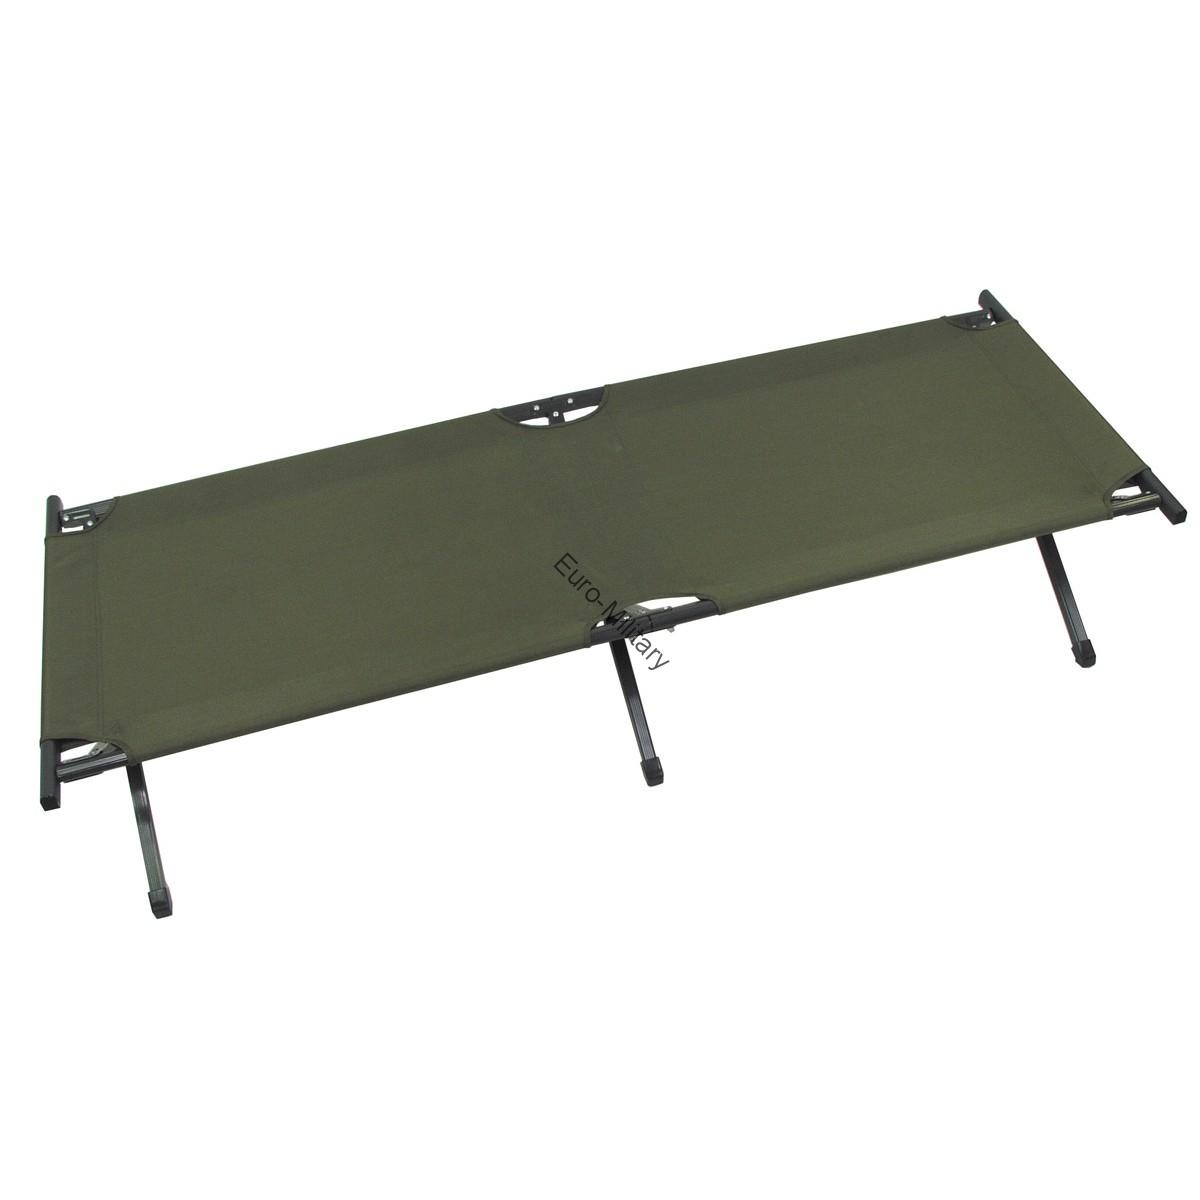 US Army Camp Bed - OD Green